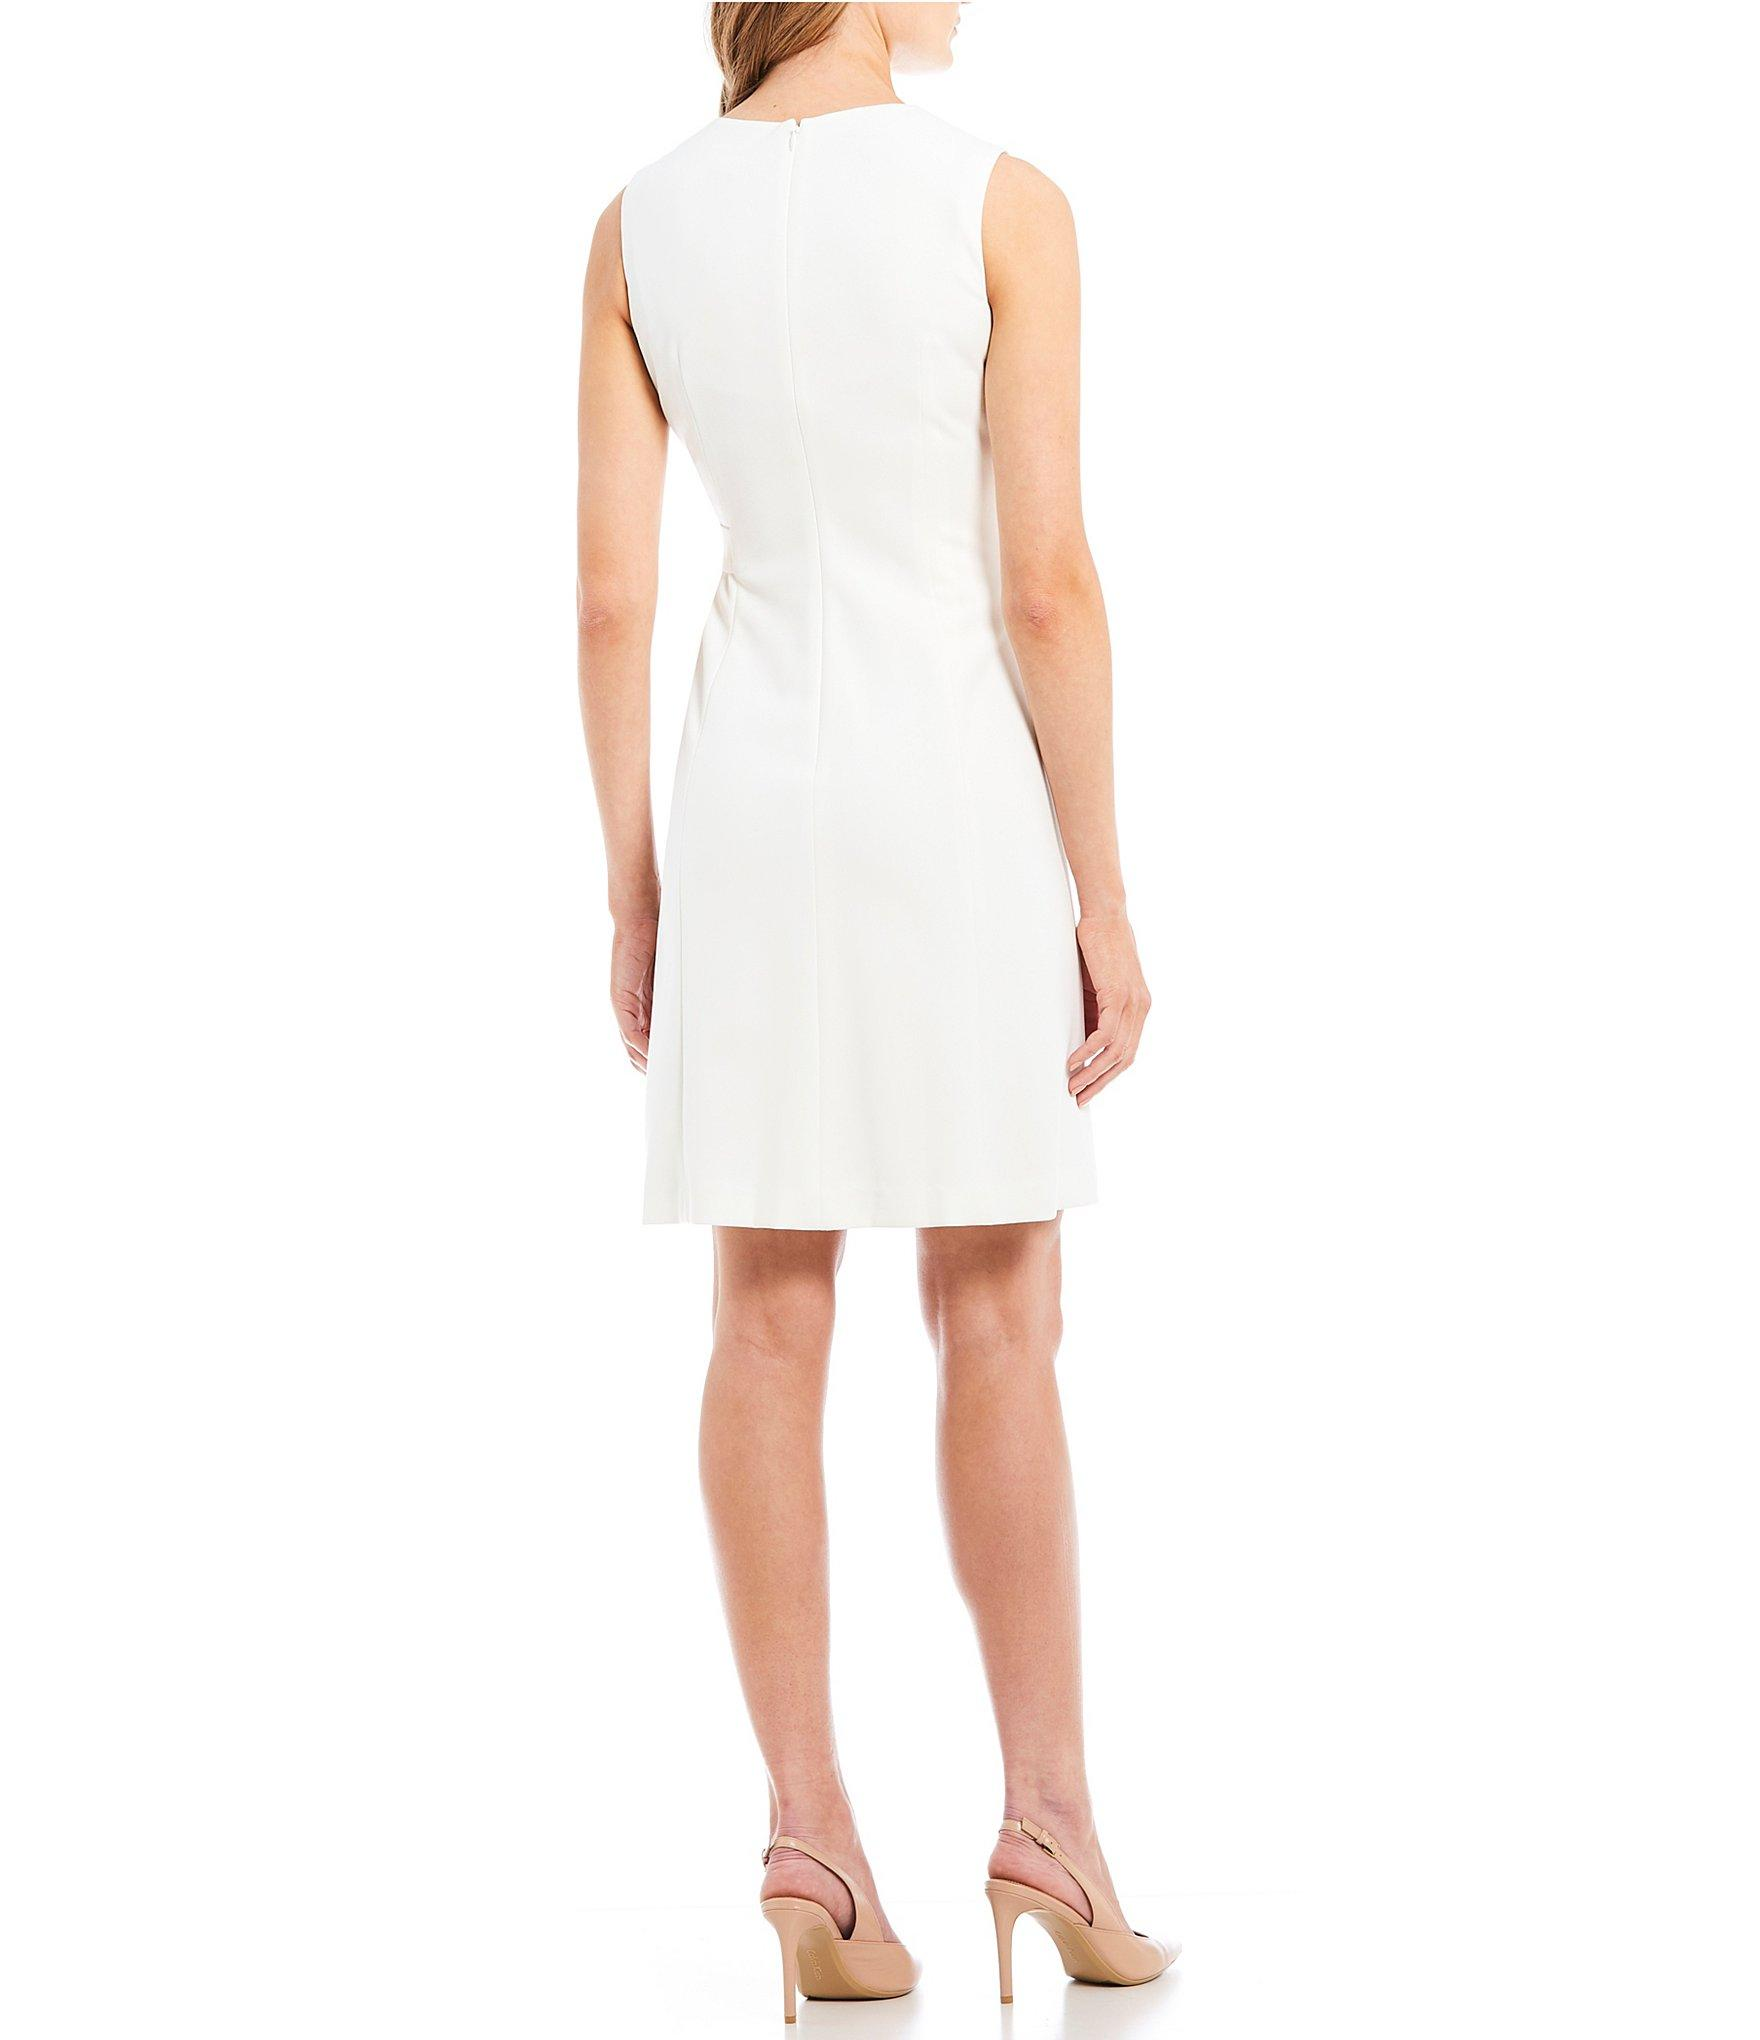 c54ecb94373 Calvin Klein - White V-neck A-line Gold Buckle Shift Dress - Lyst. View  fullscreen